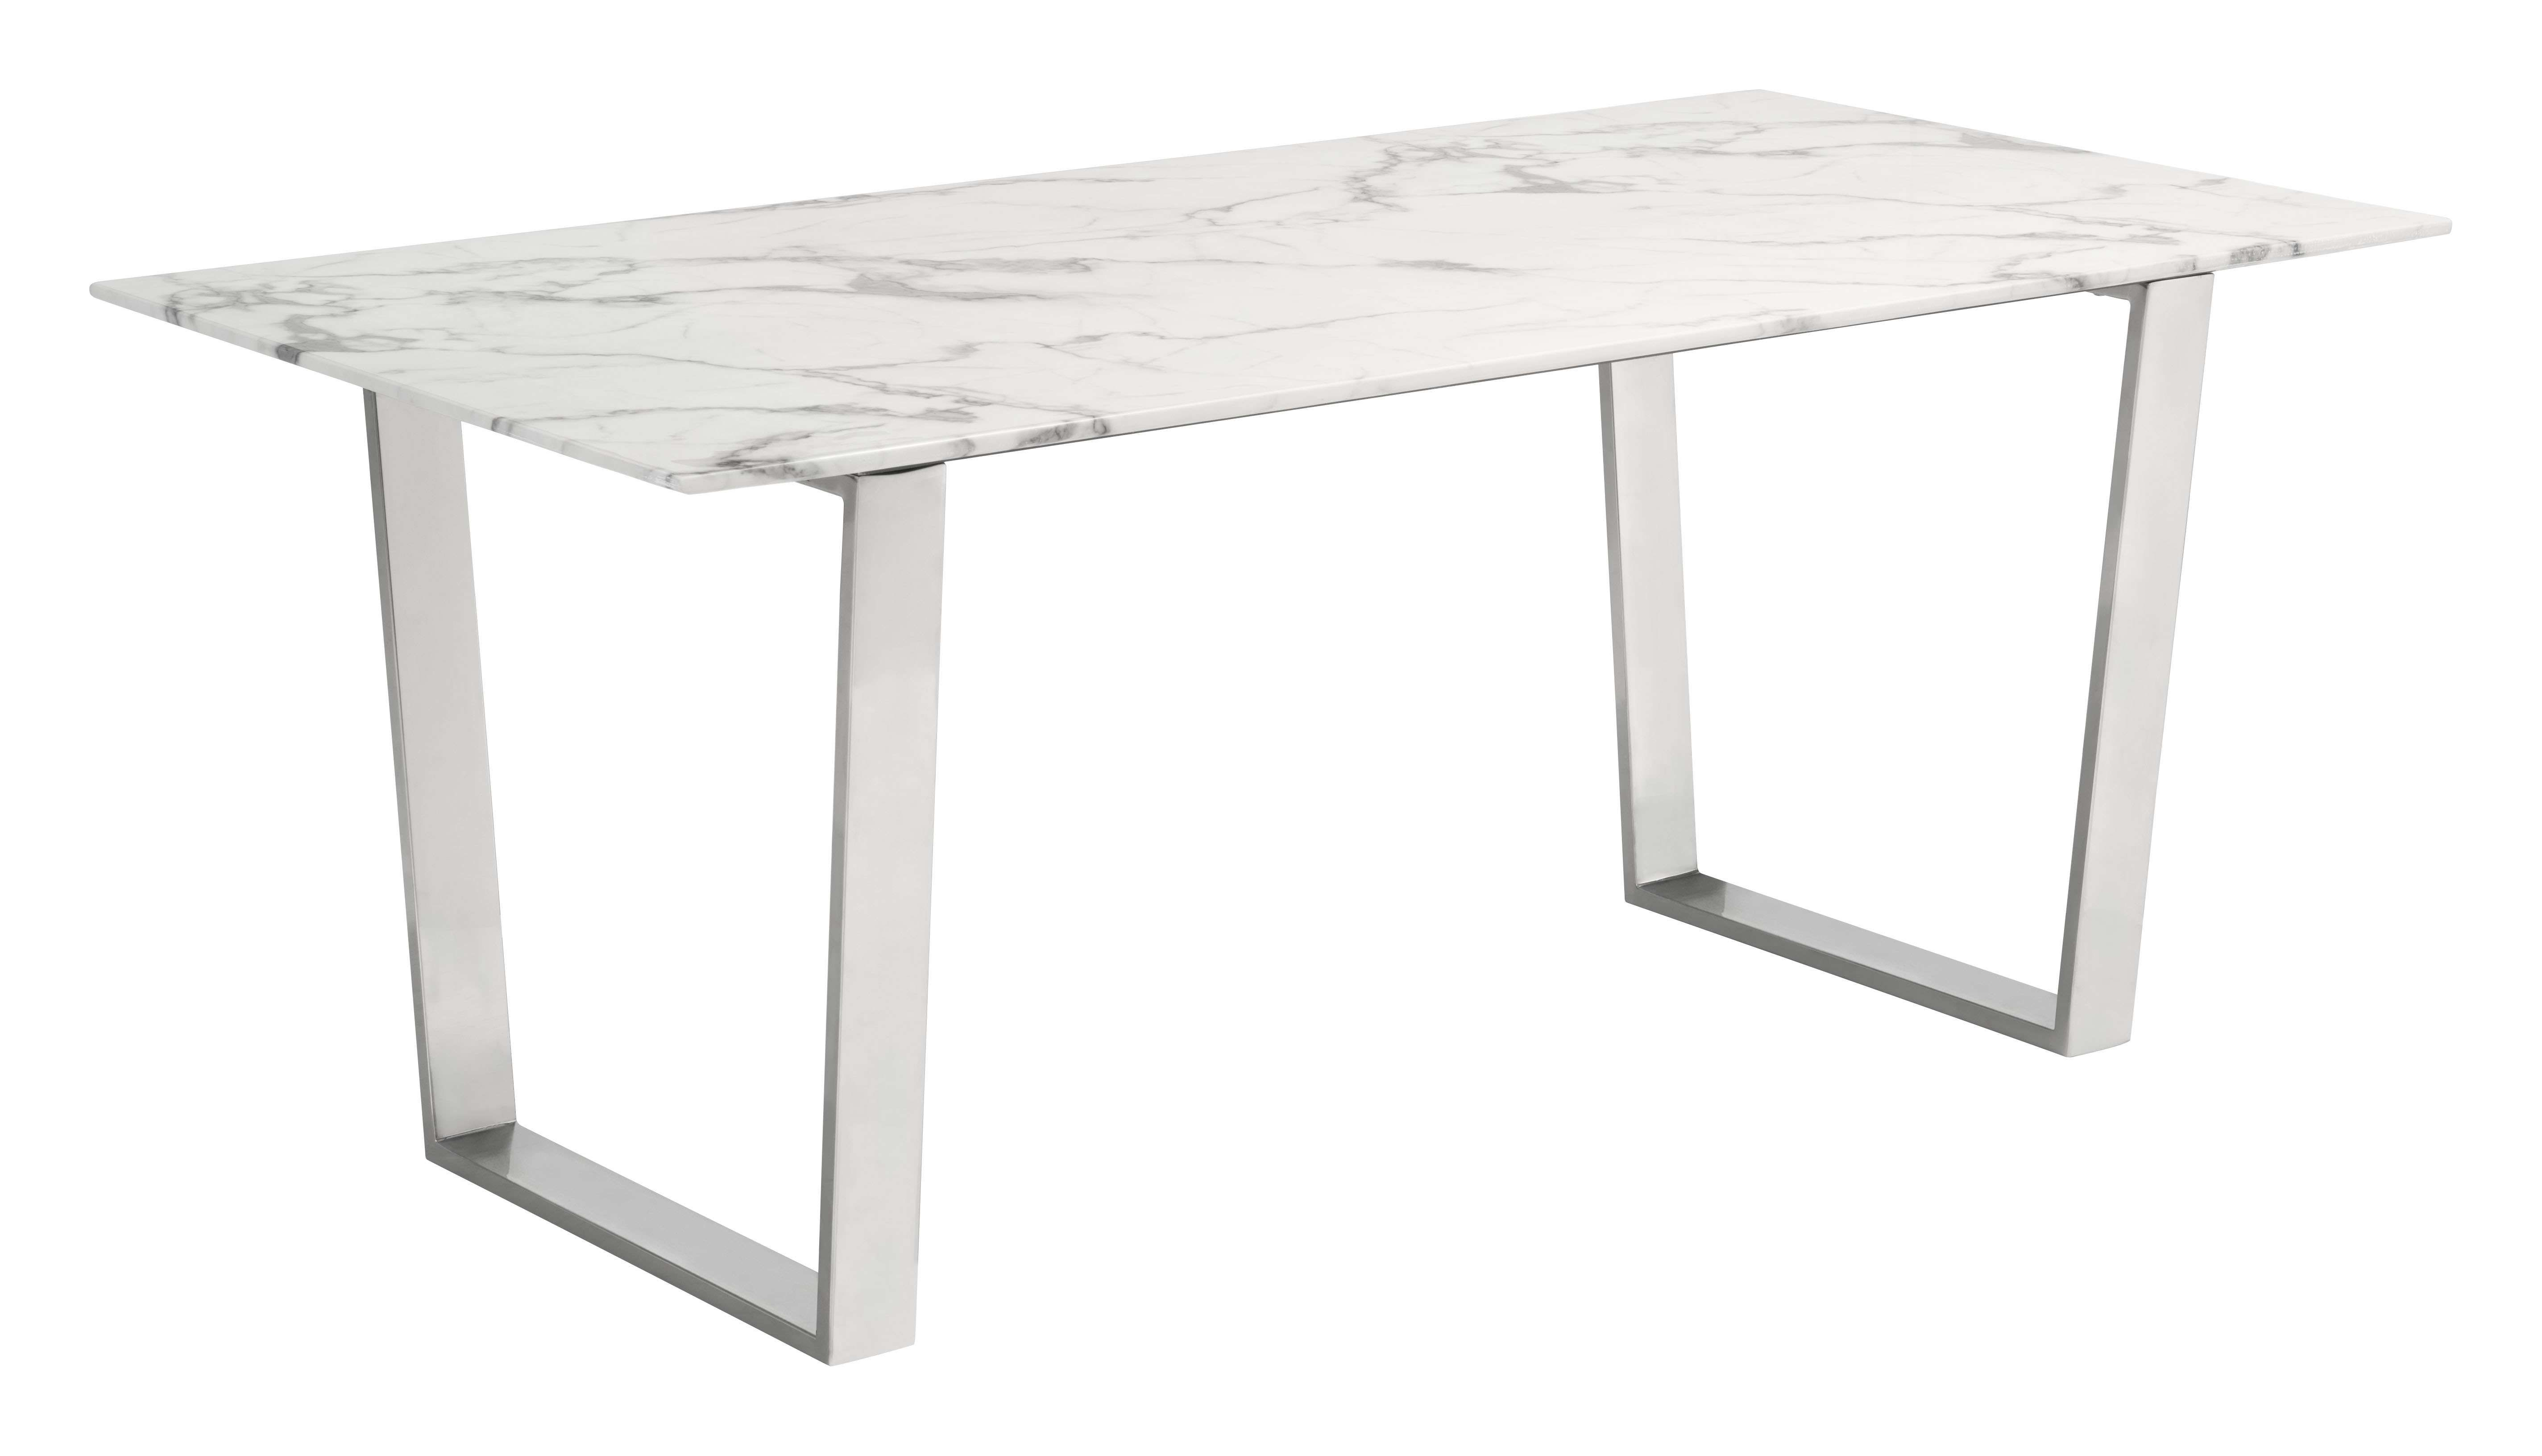 Zuo Modern Atlas Stone Stainless Steel Dining Table Reviews